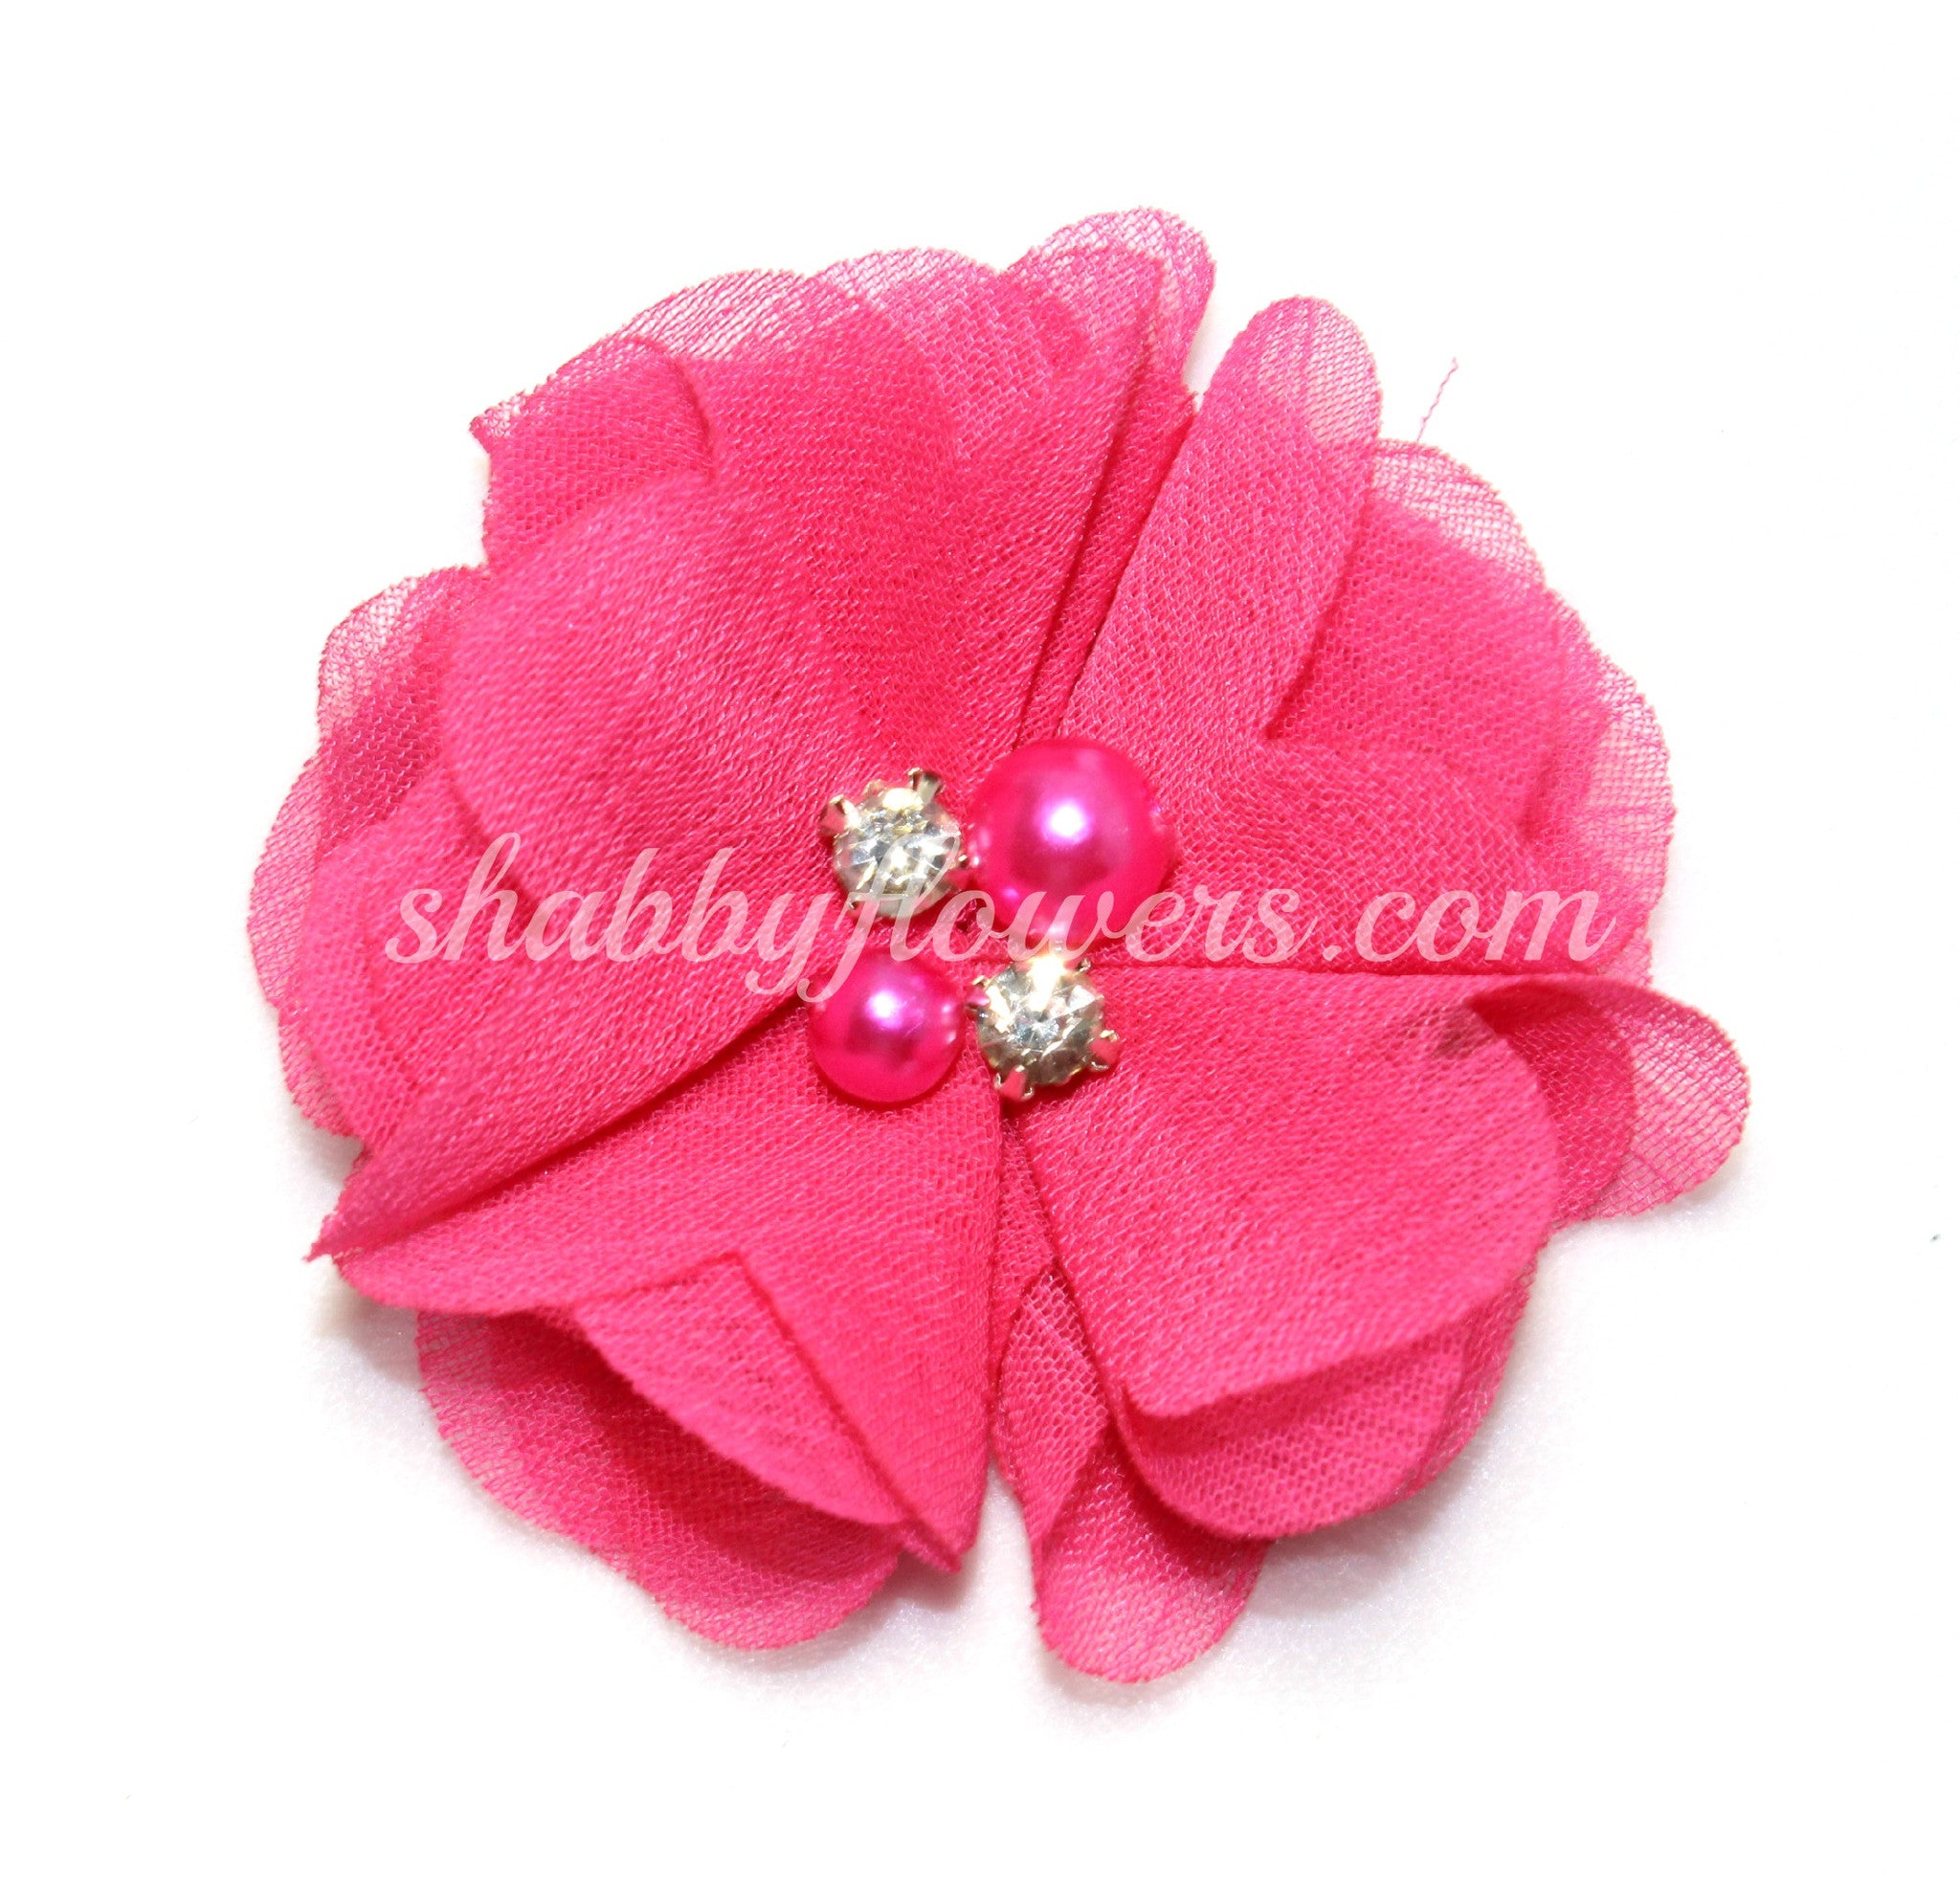 Pearl & Rhinestone Flower- Hot Pink - shabbyflowers.com